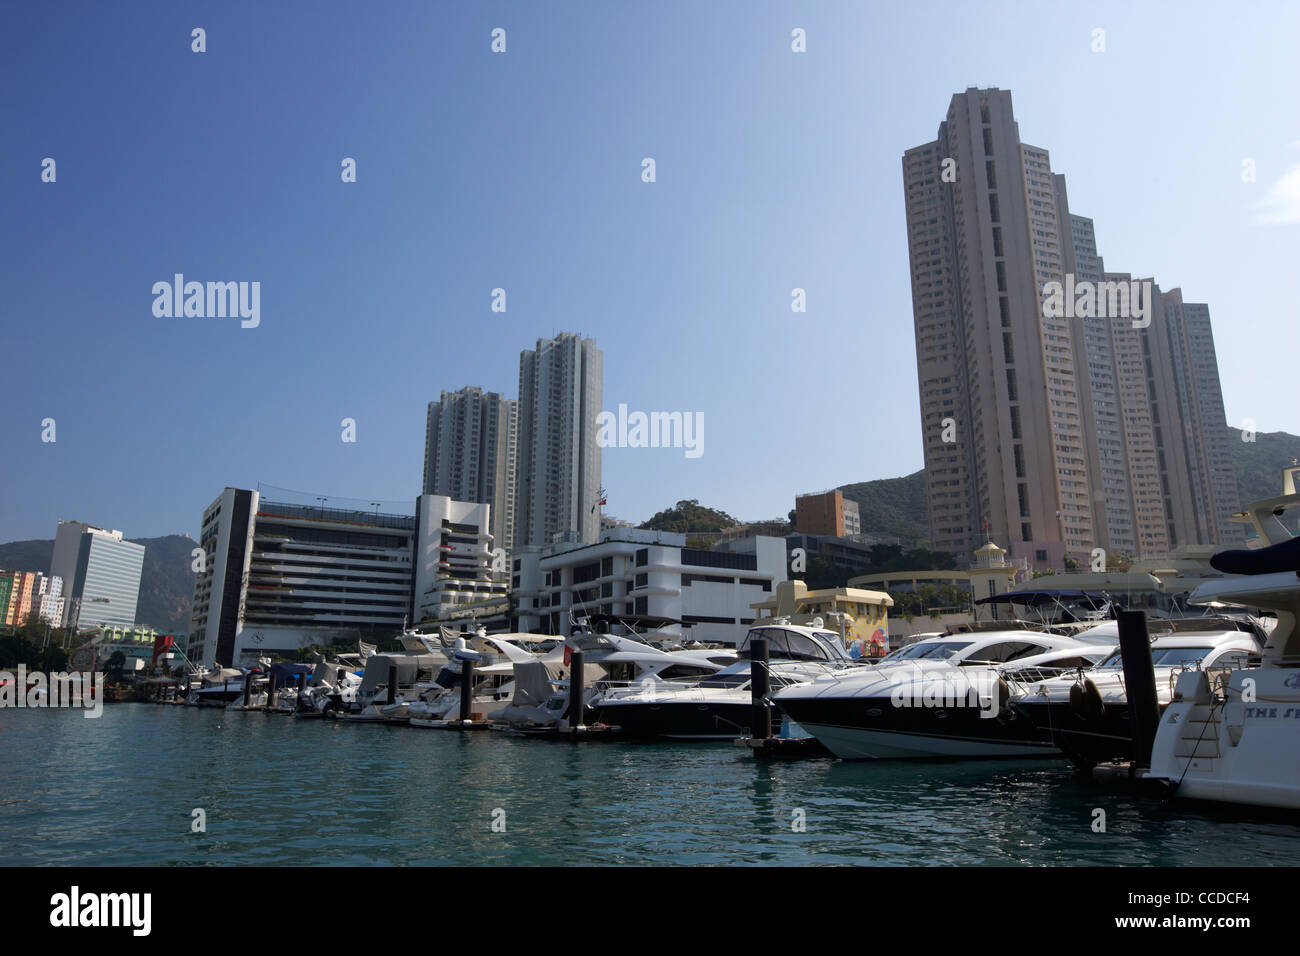 expensive luxury motorboat cruisers moored in aberdeen harbour marina hong kong hksar china asia - Stock Image